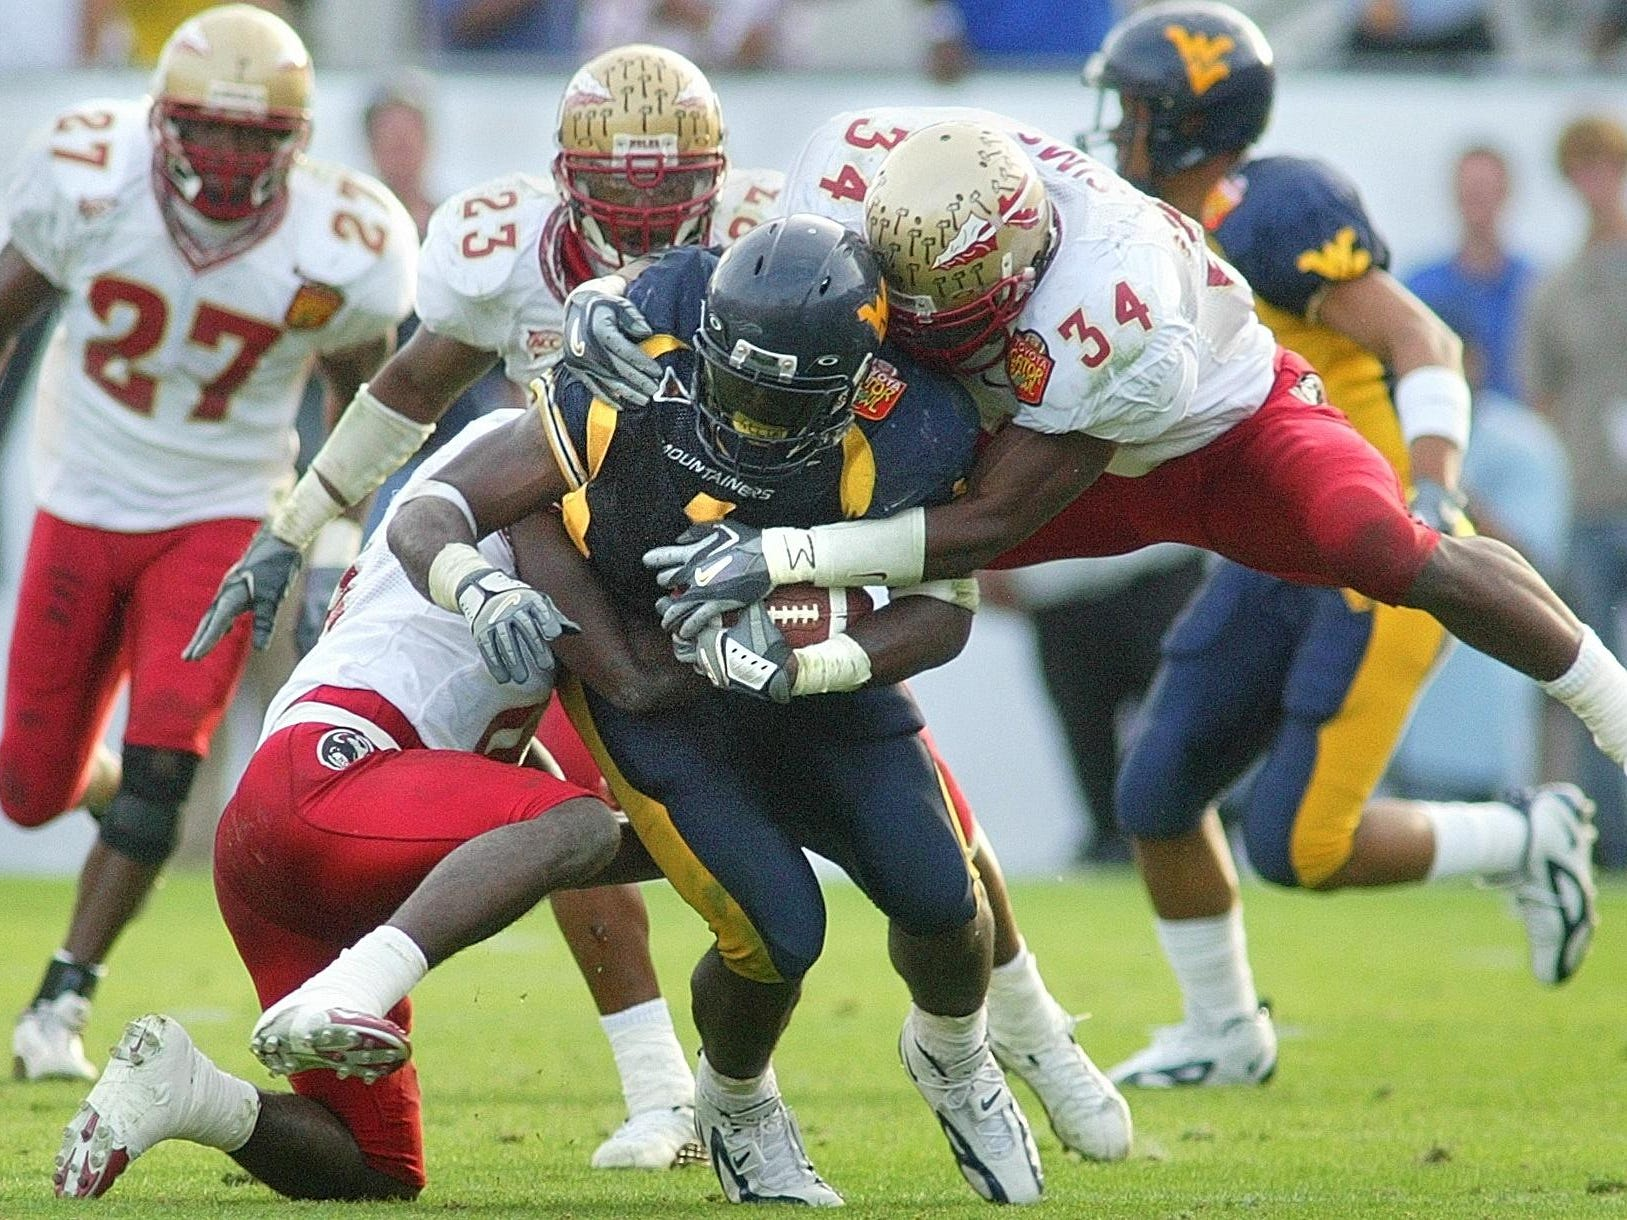 FSU's Bryant McFadden (8) and Ernie Sims (34) nail West Virginia running back Kay-Jay Harris on a run during a 2004 game.